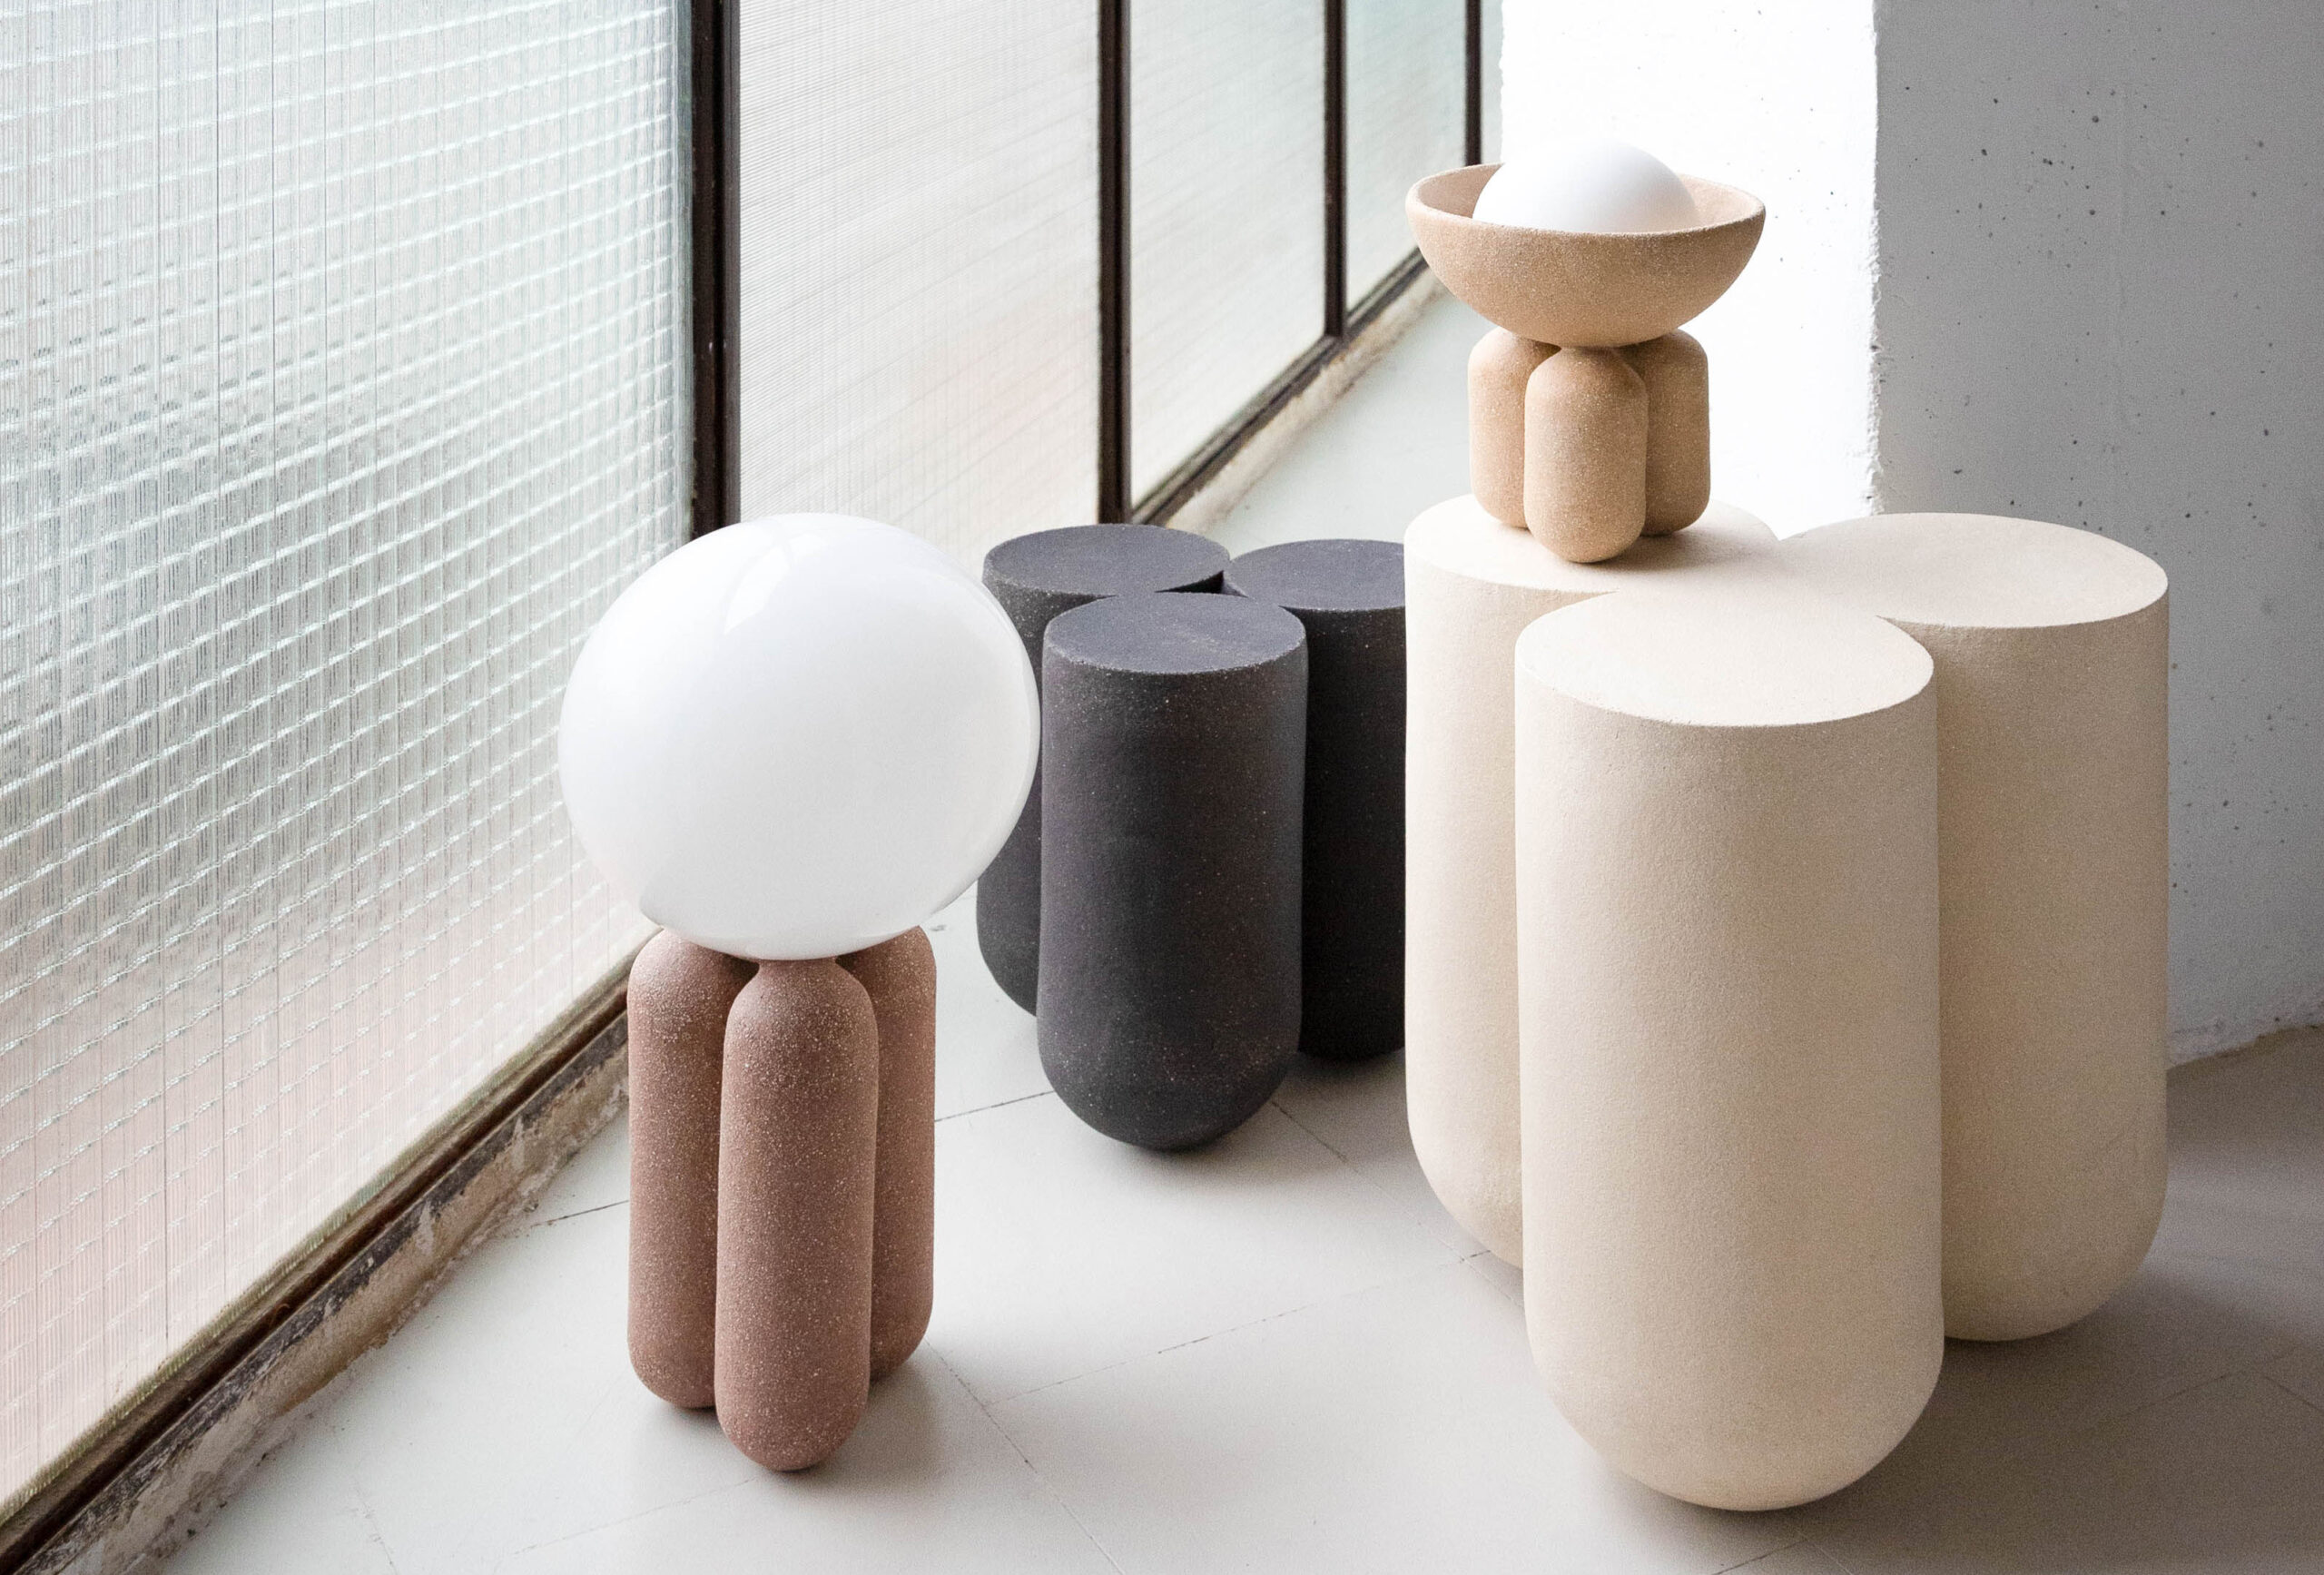 Ceramic furniture - lighting - accessories